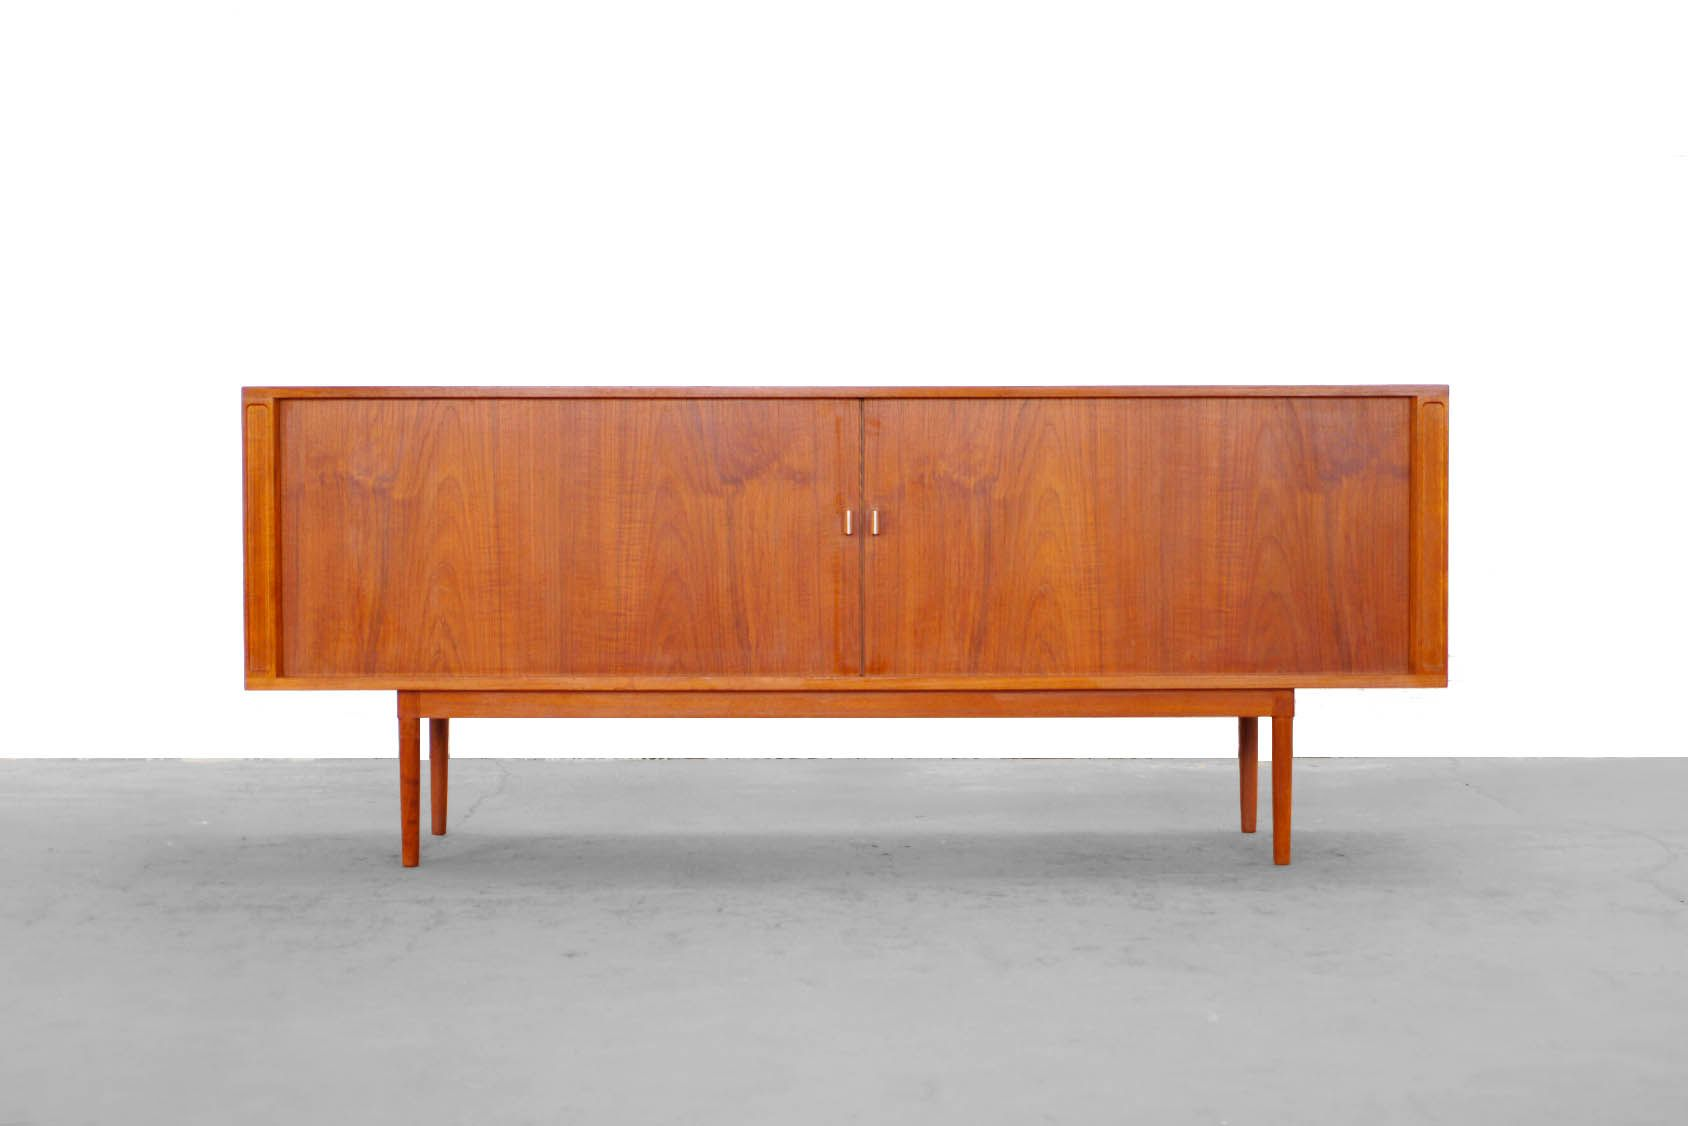 d nisches sideboard von jens harald quistgaard 1960 bei. Black Bedroom Furniture Sets. Home Design Ideas